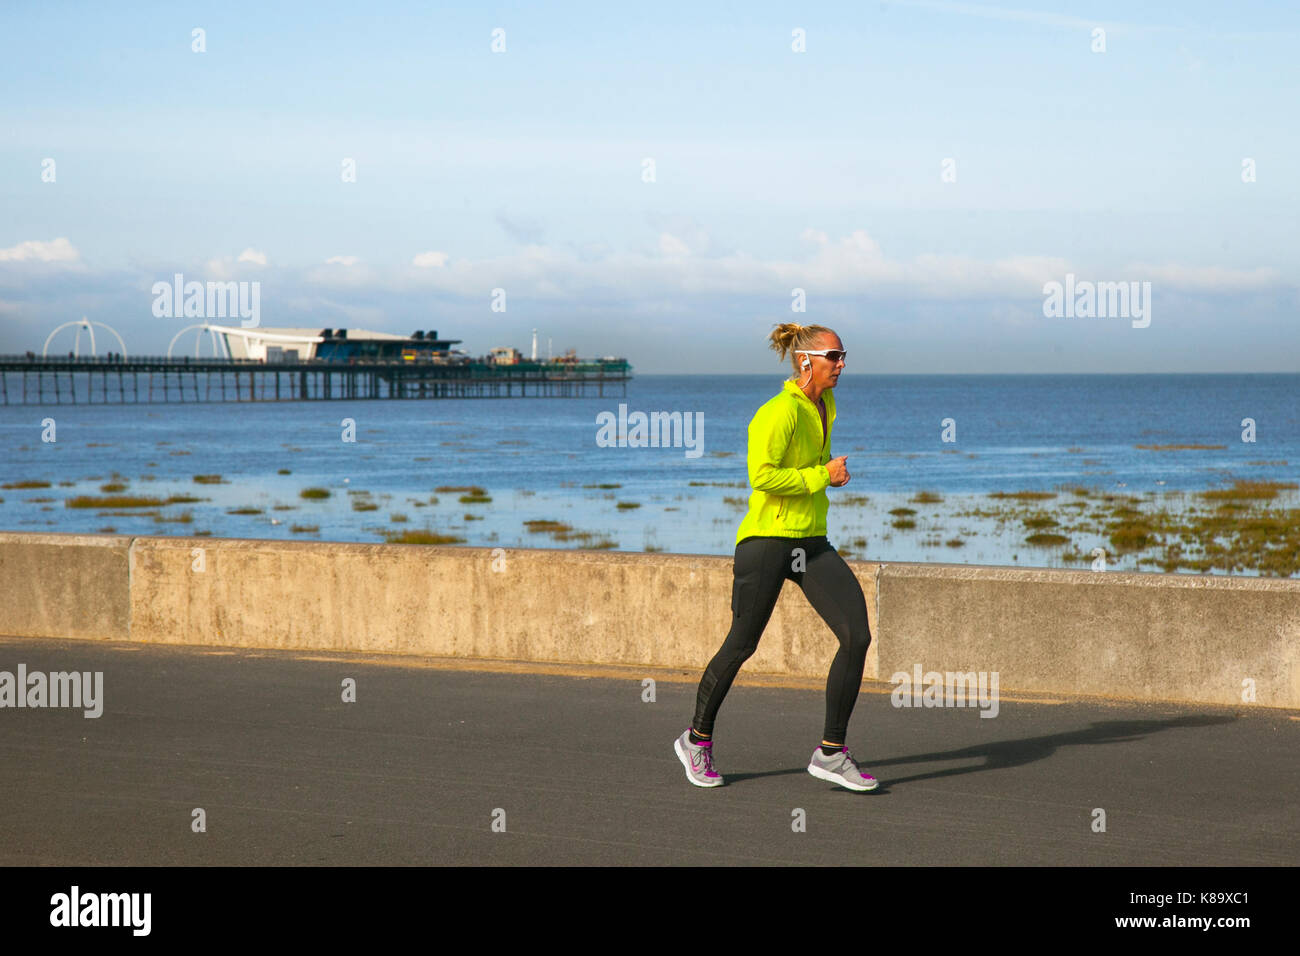 Southport, Merseyside. UK Weather. 19th September, 2017. Sunny start to the day on the coast, with bright sunshine - Stock Image